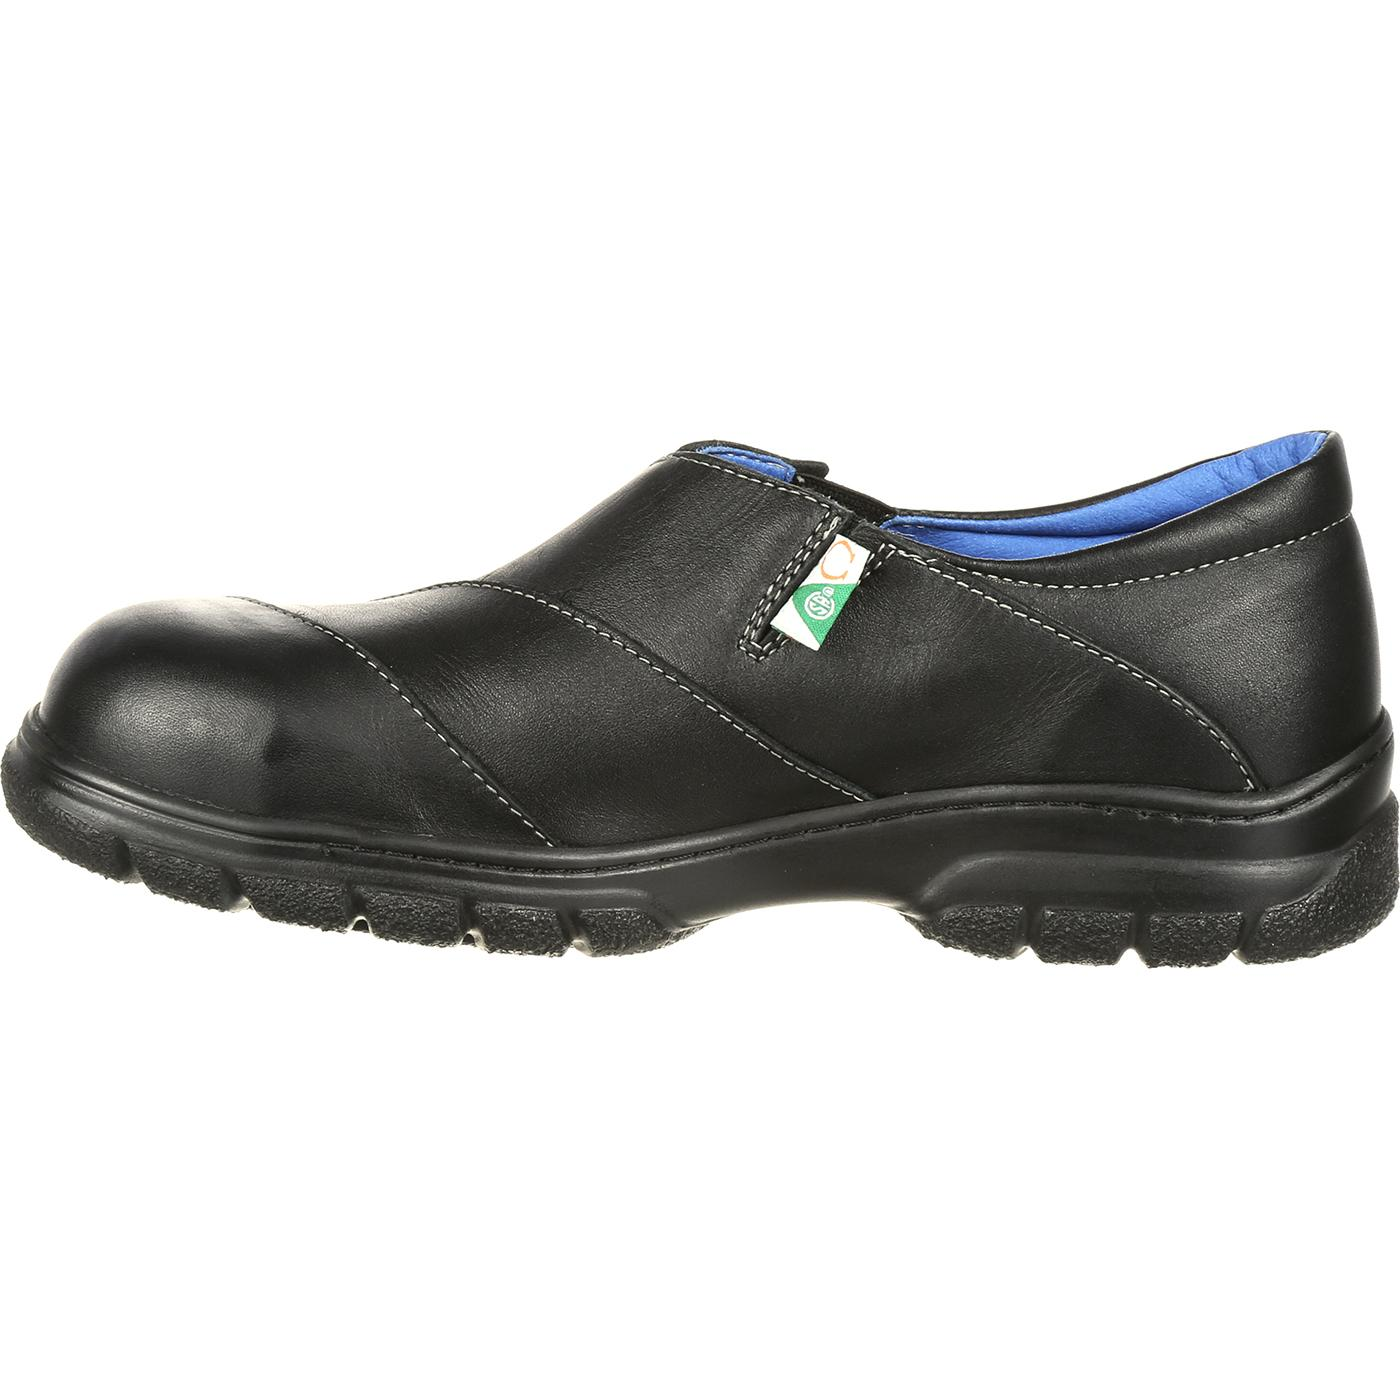 Csa Approved Steel Toe Safety Shoes